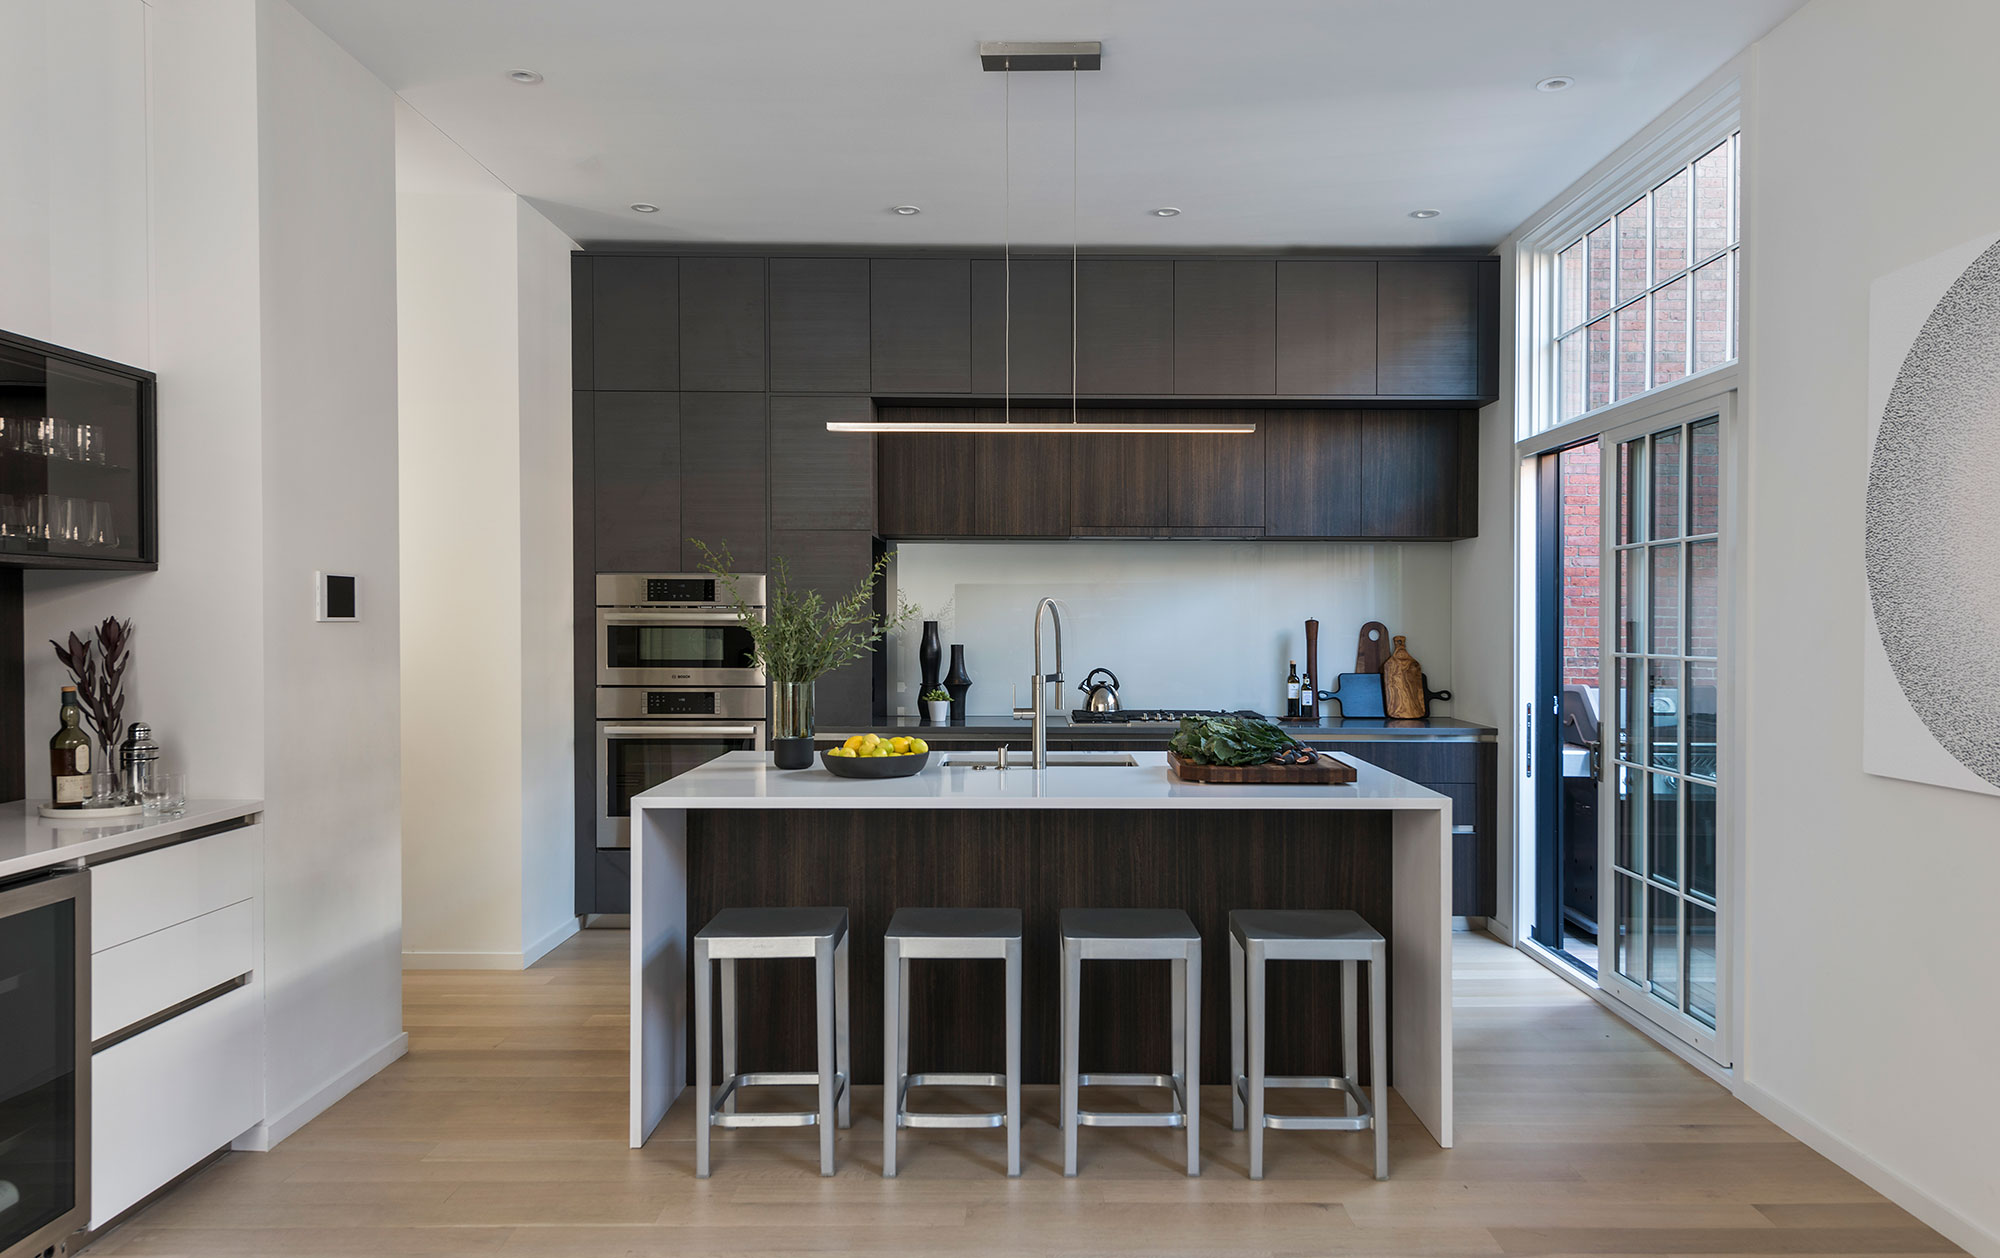 kitchen with sink island and outdoor balcony